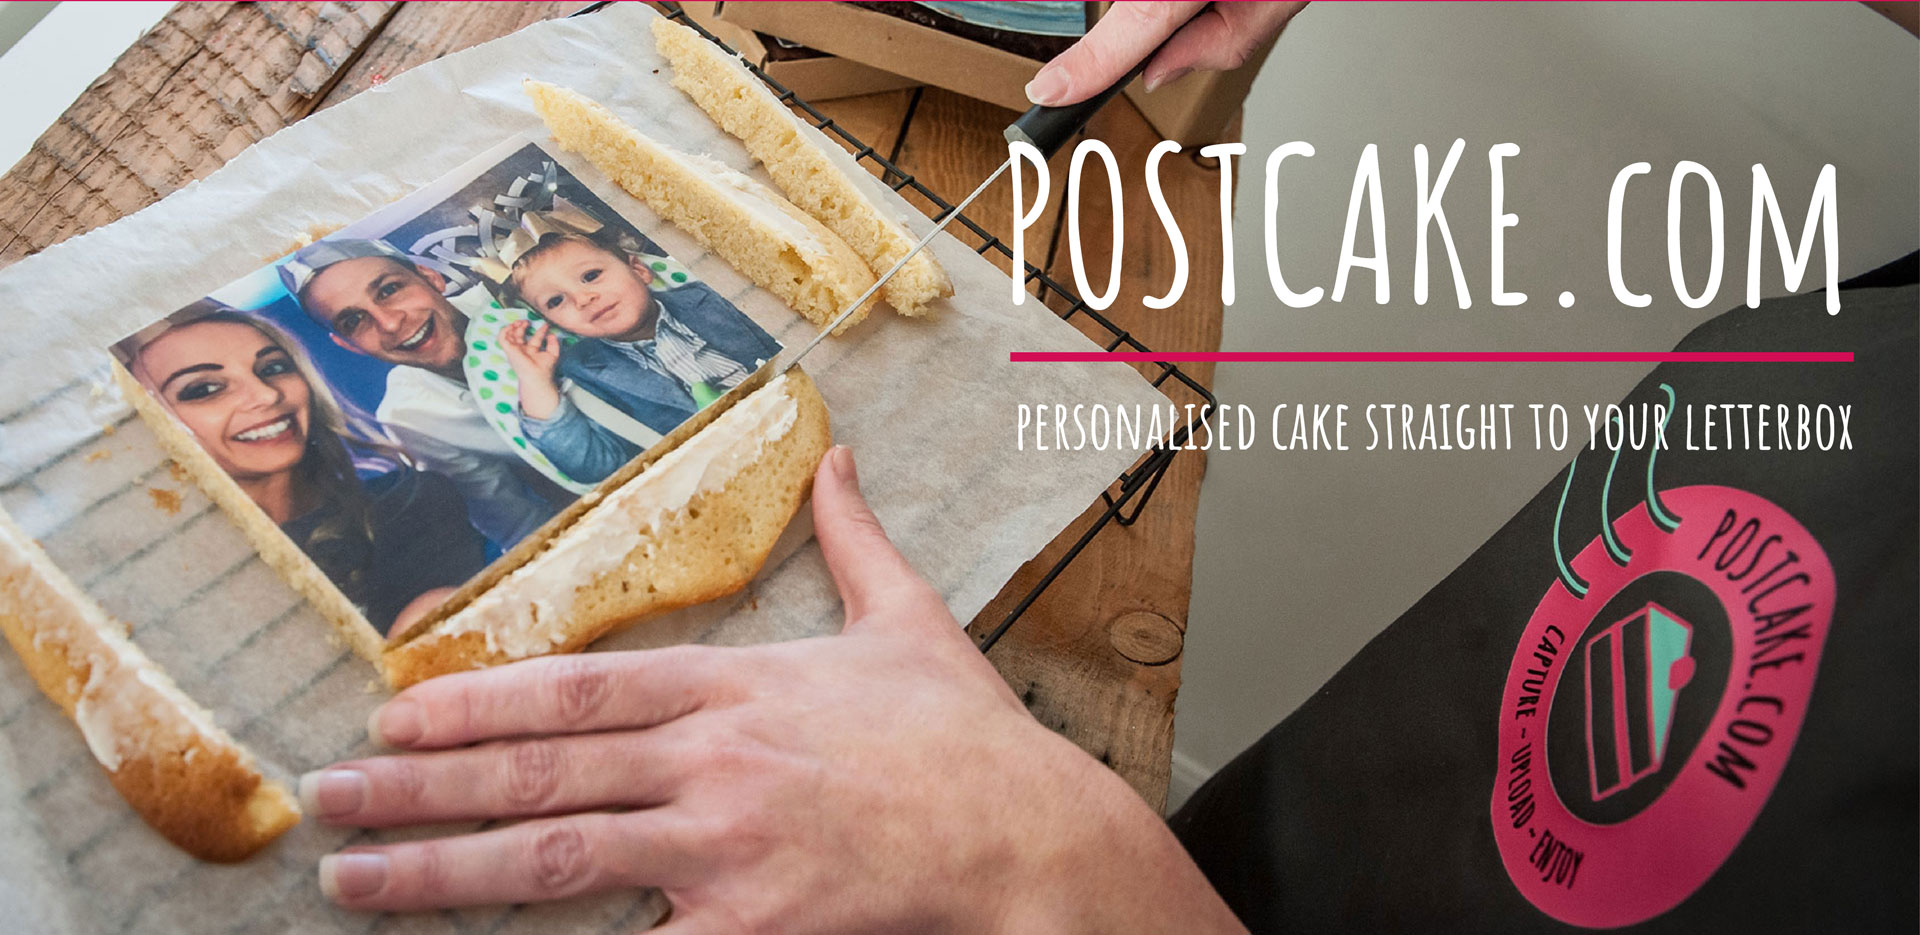 Postcake - Send Personalised Cake in the Post - Cake Card